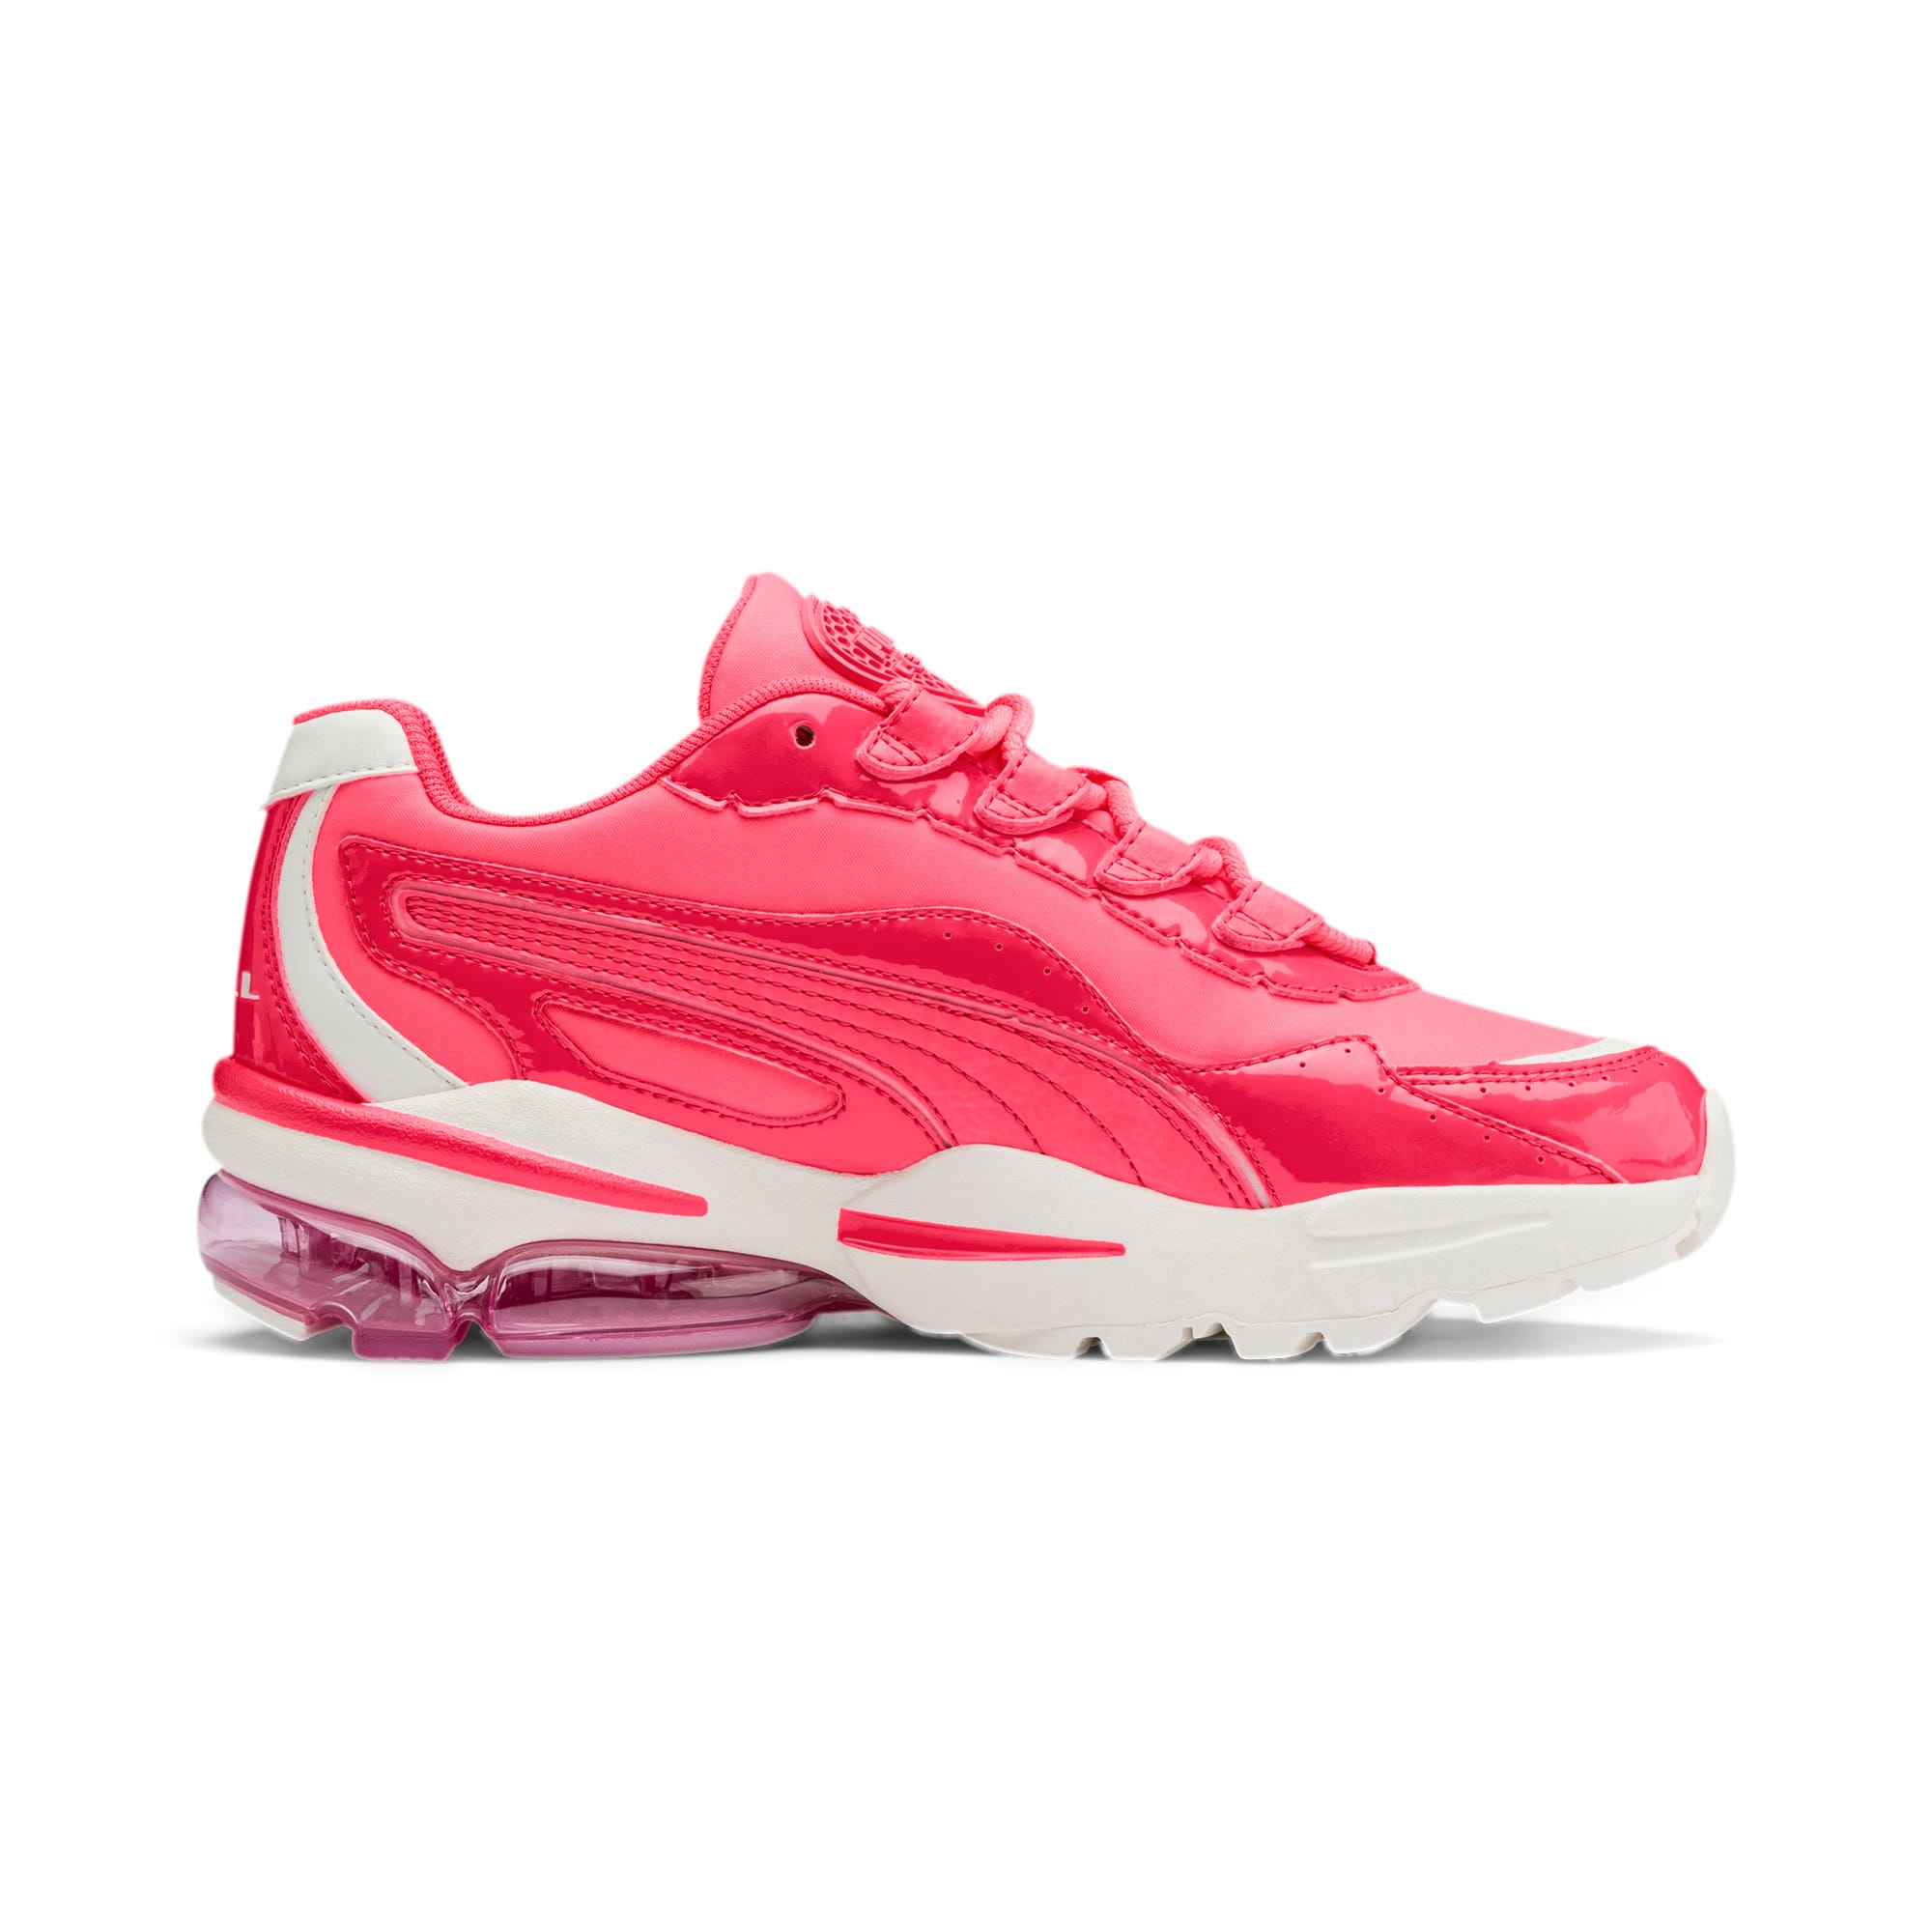 Thumbnail 6 of CELL Stellar Neon Women's Sneakers, Pink Alert-Heather, medium